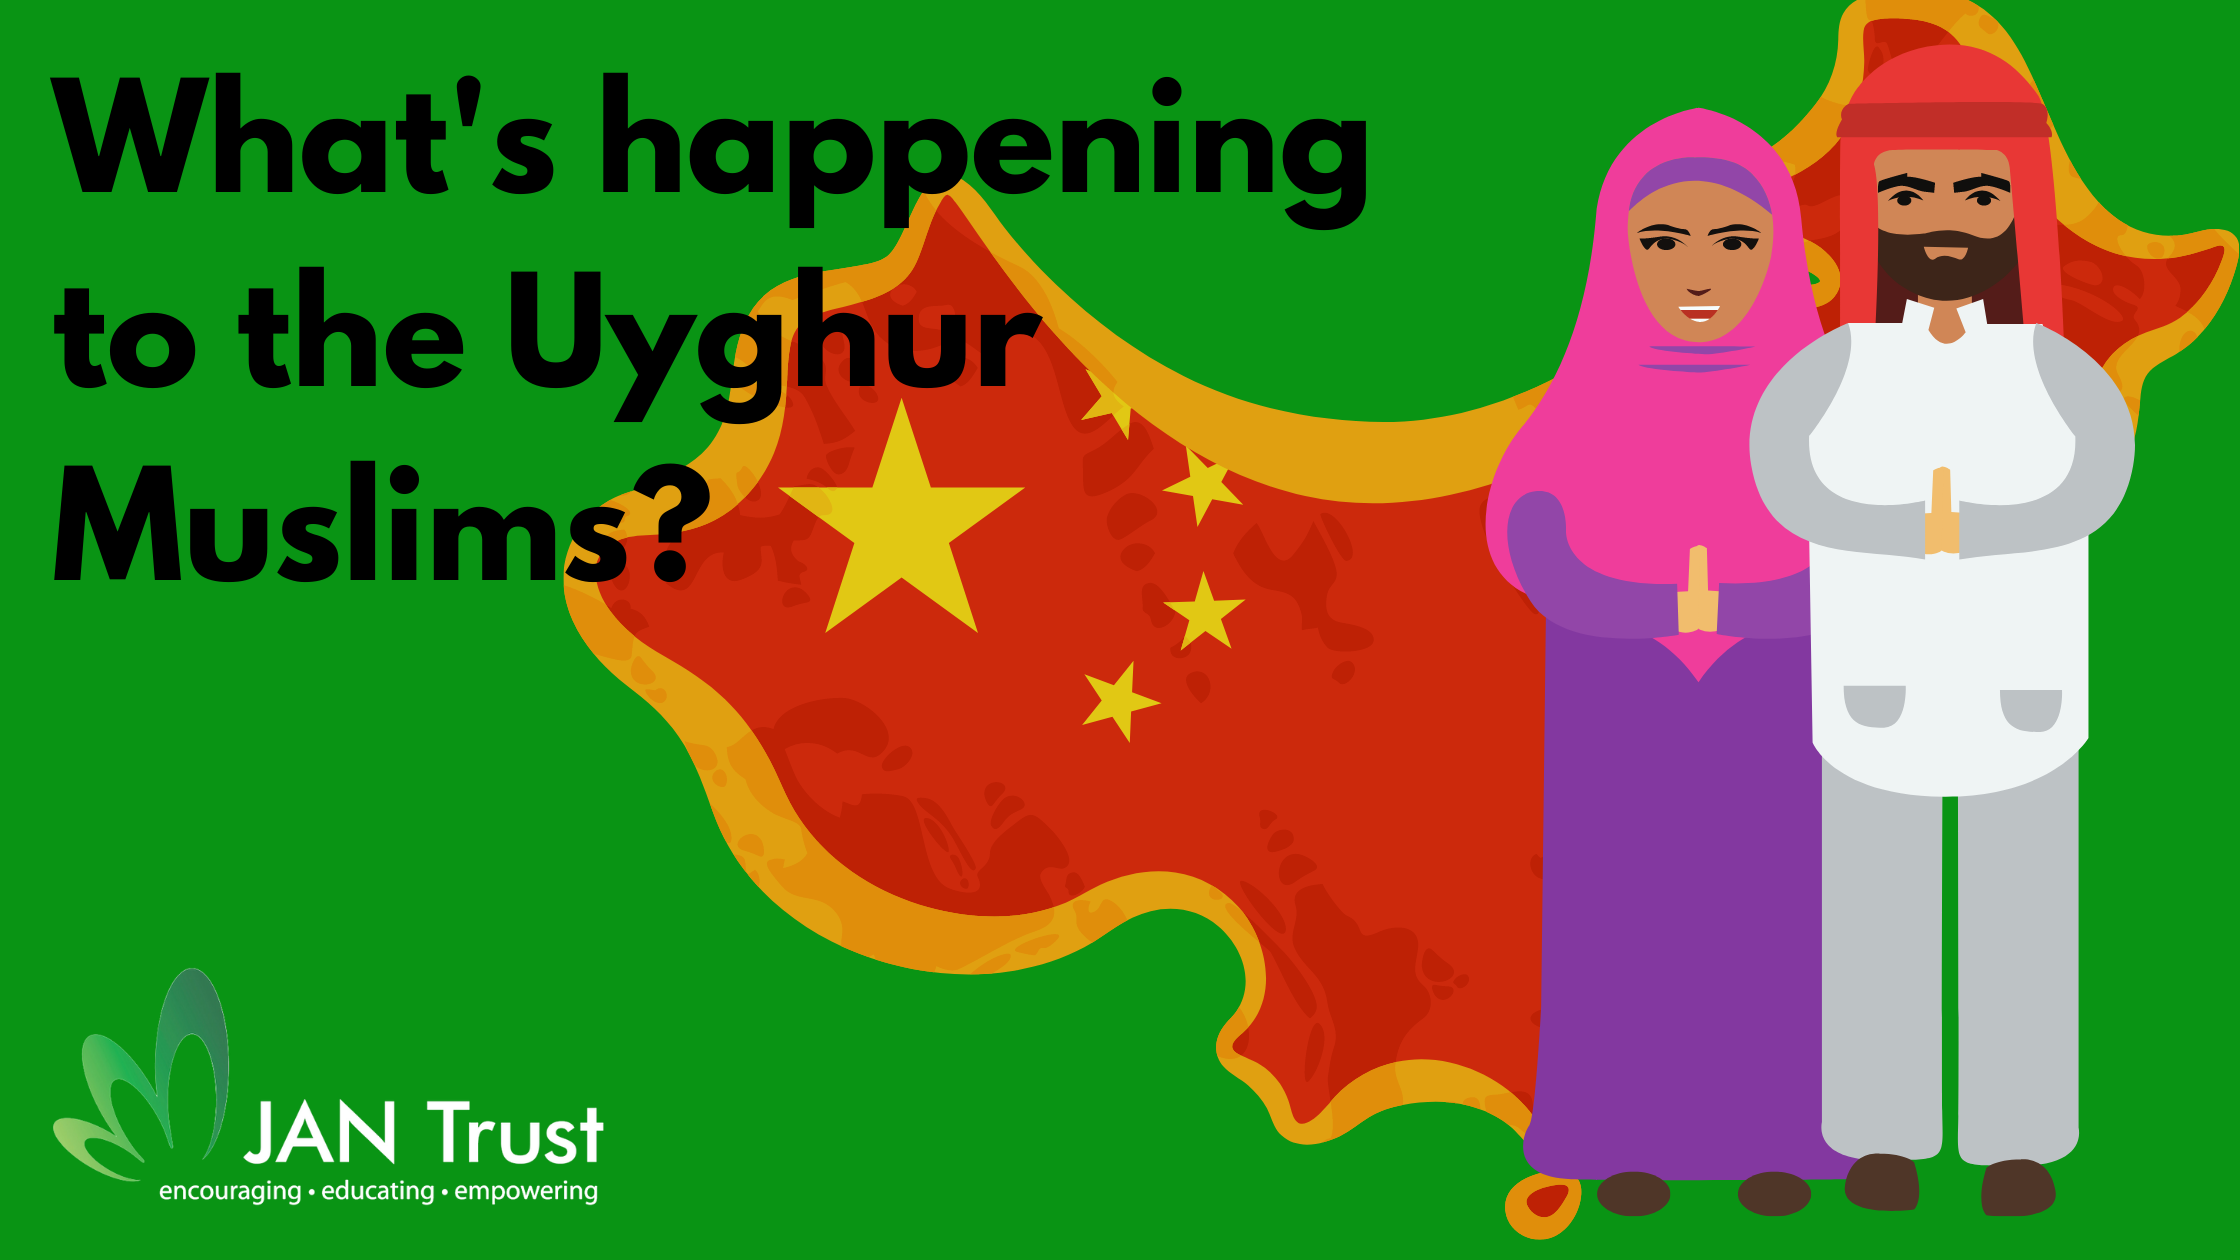 What's happening to the Uyghur Muslims?